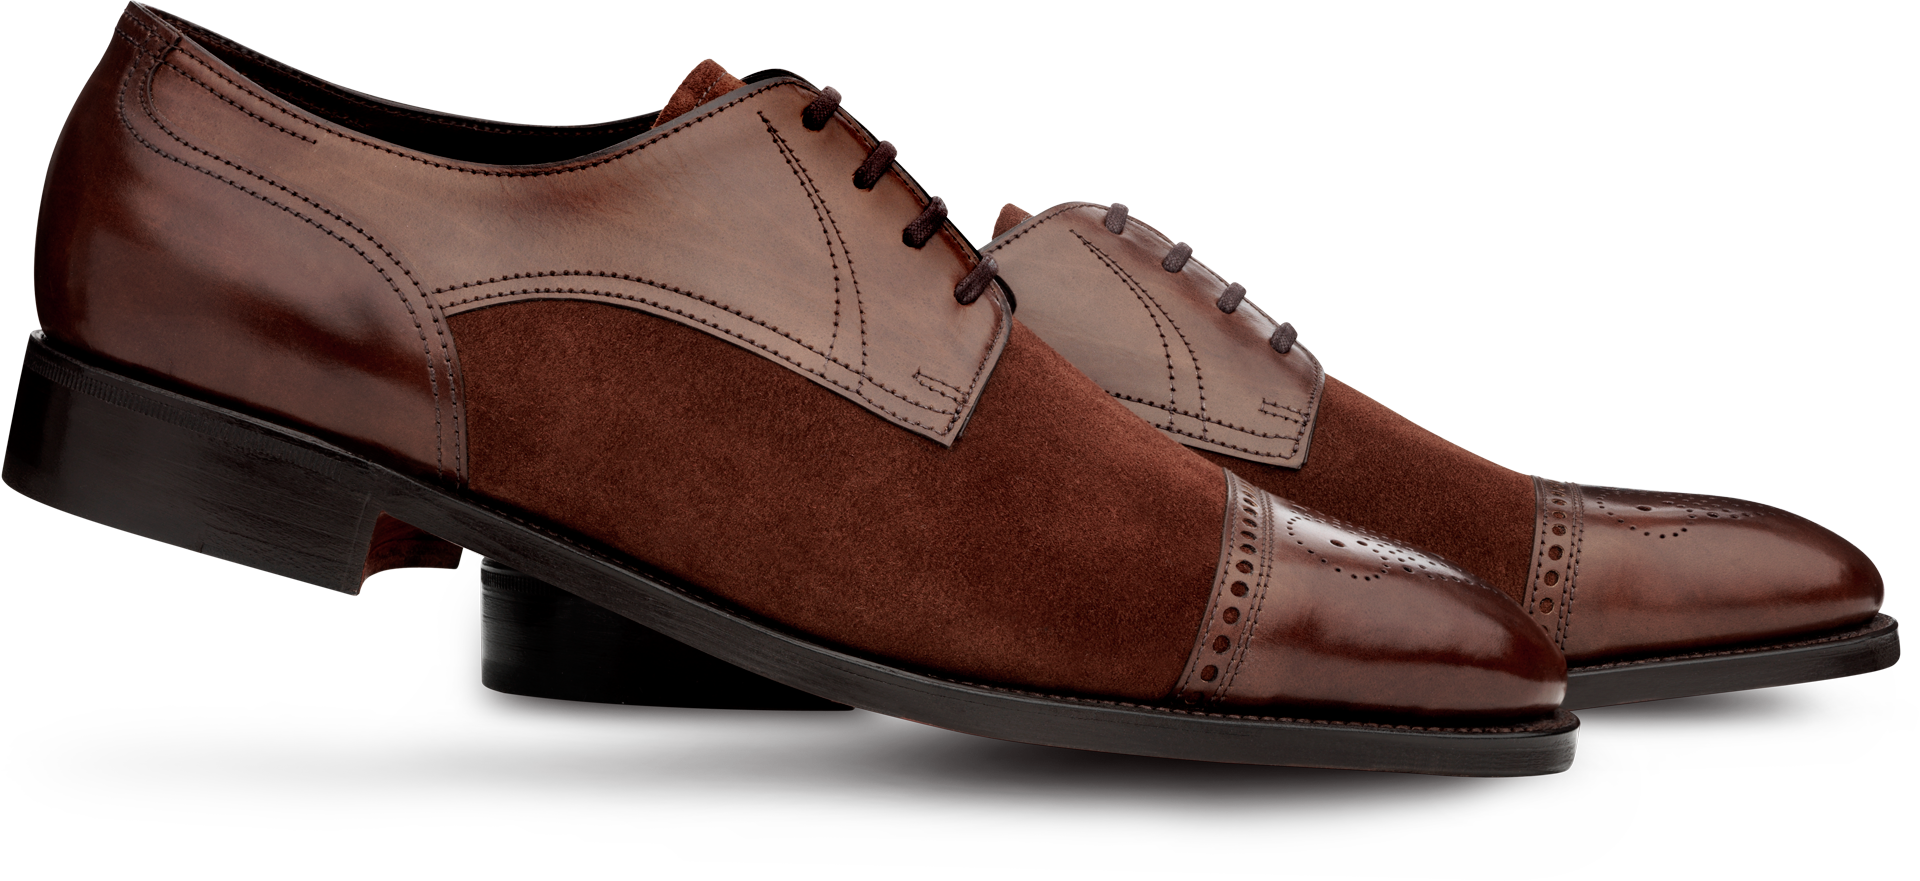 Lobb Shoes London Price